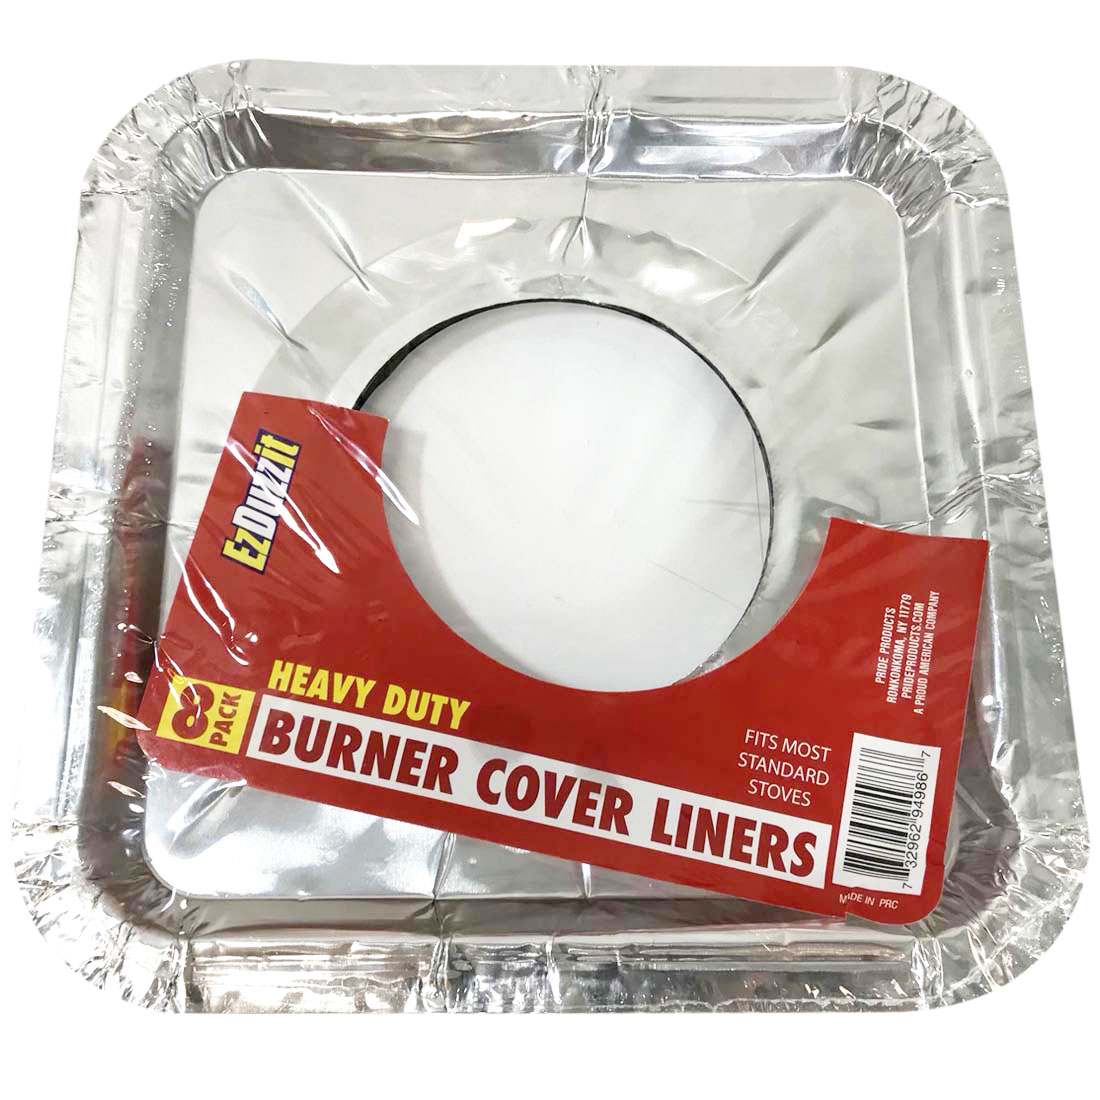 View FOIL BURNER LINER 8 PACK 8.5 X 8.5 INCHES HEAVY DUTY